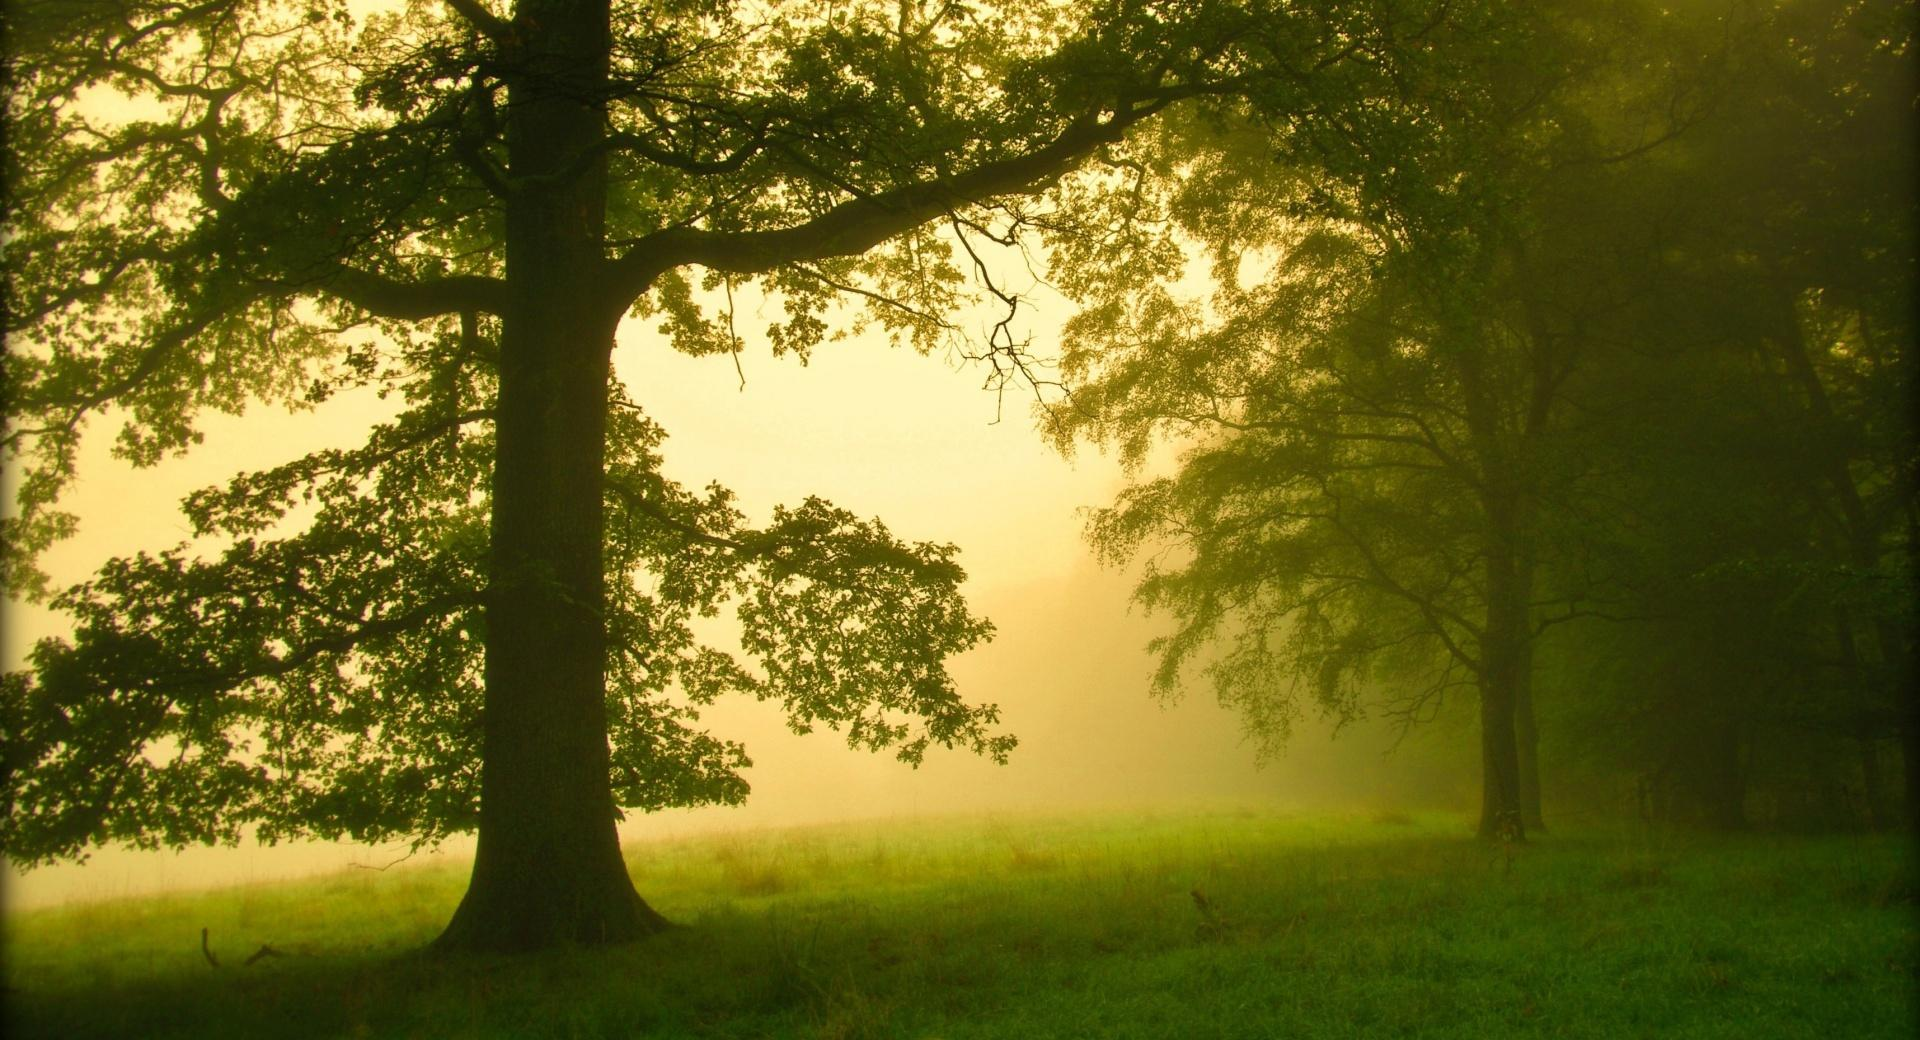 Morning Mist at 640 x 1136 iPhone 5 size wallpapers HD quality